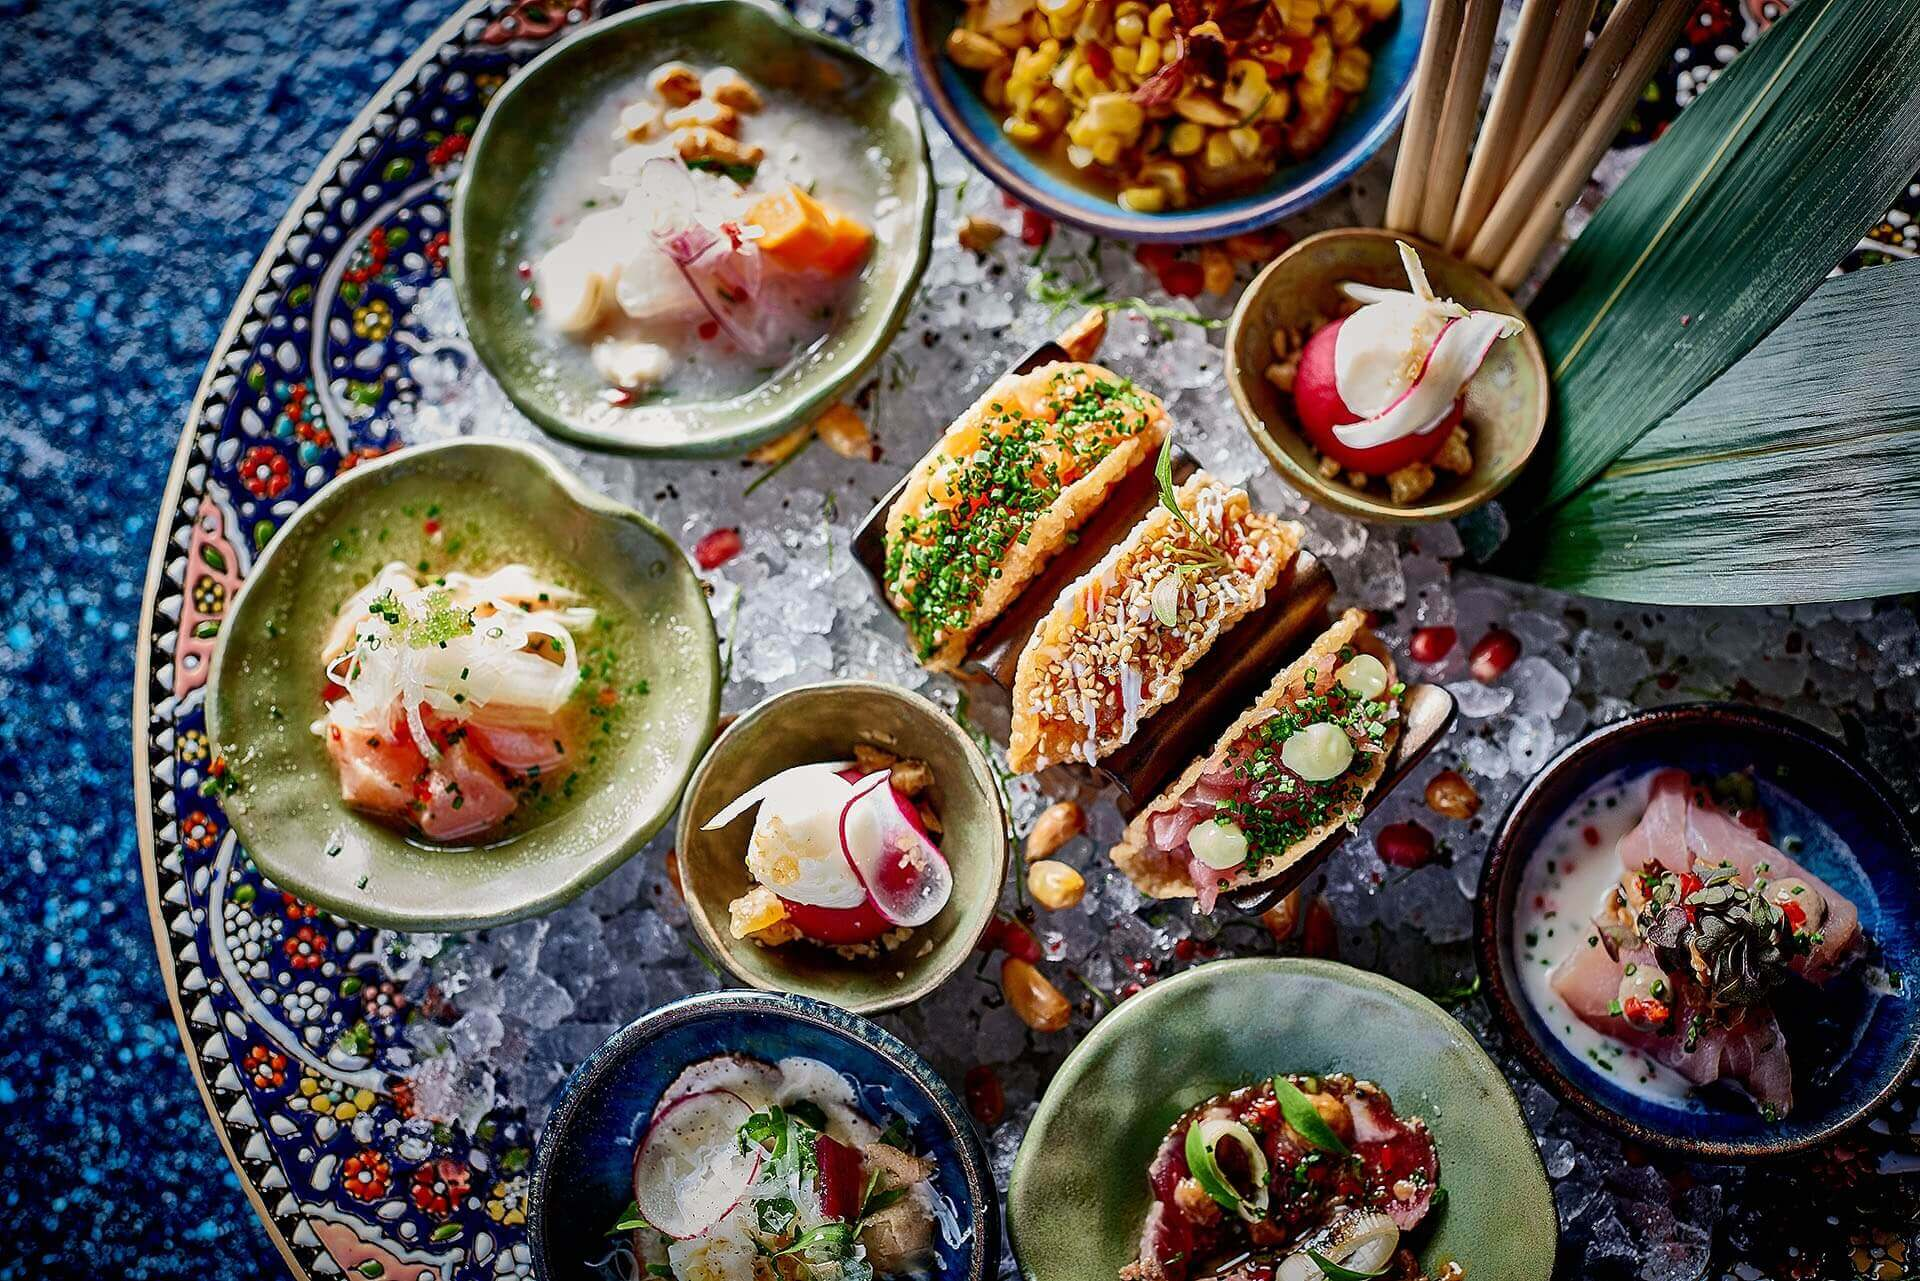 Coya, Mayfair, Bottomless Food, Unlimited, Booze, Brunch